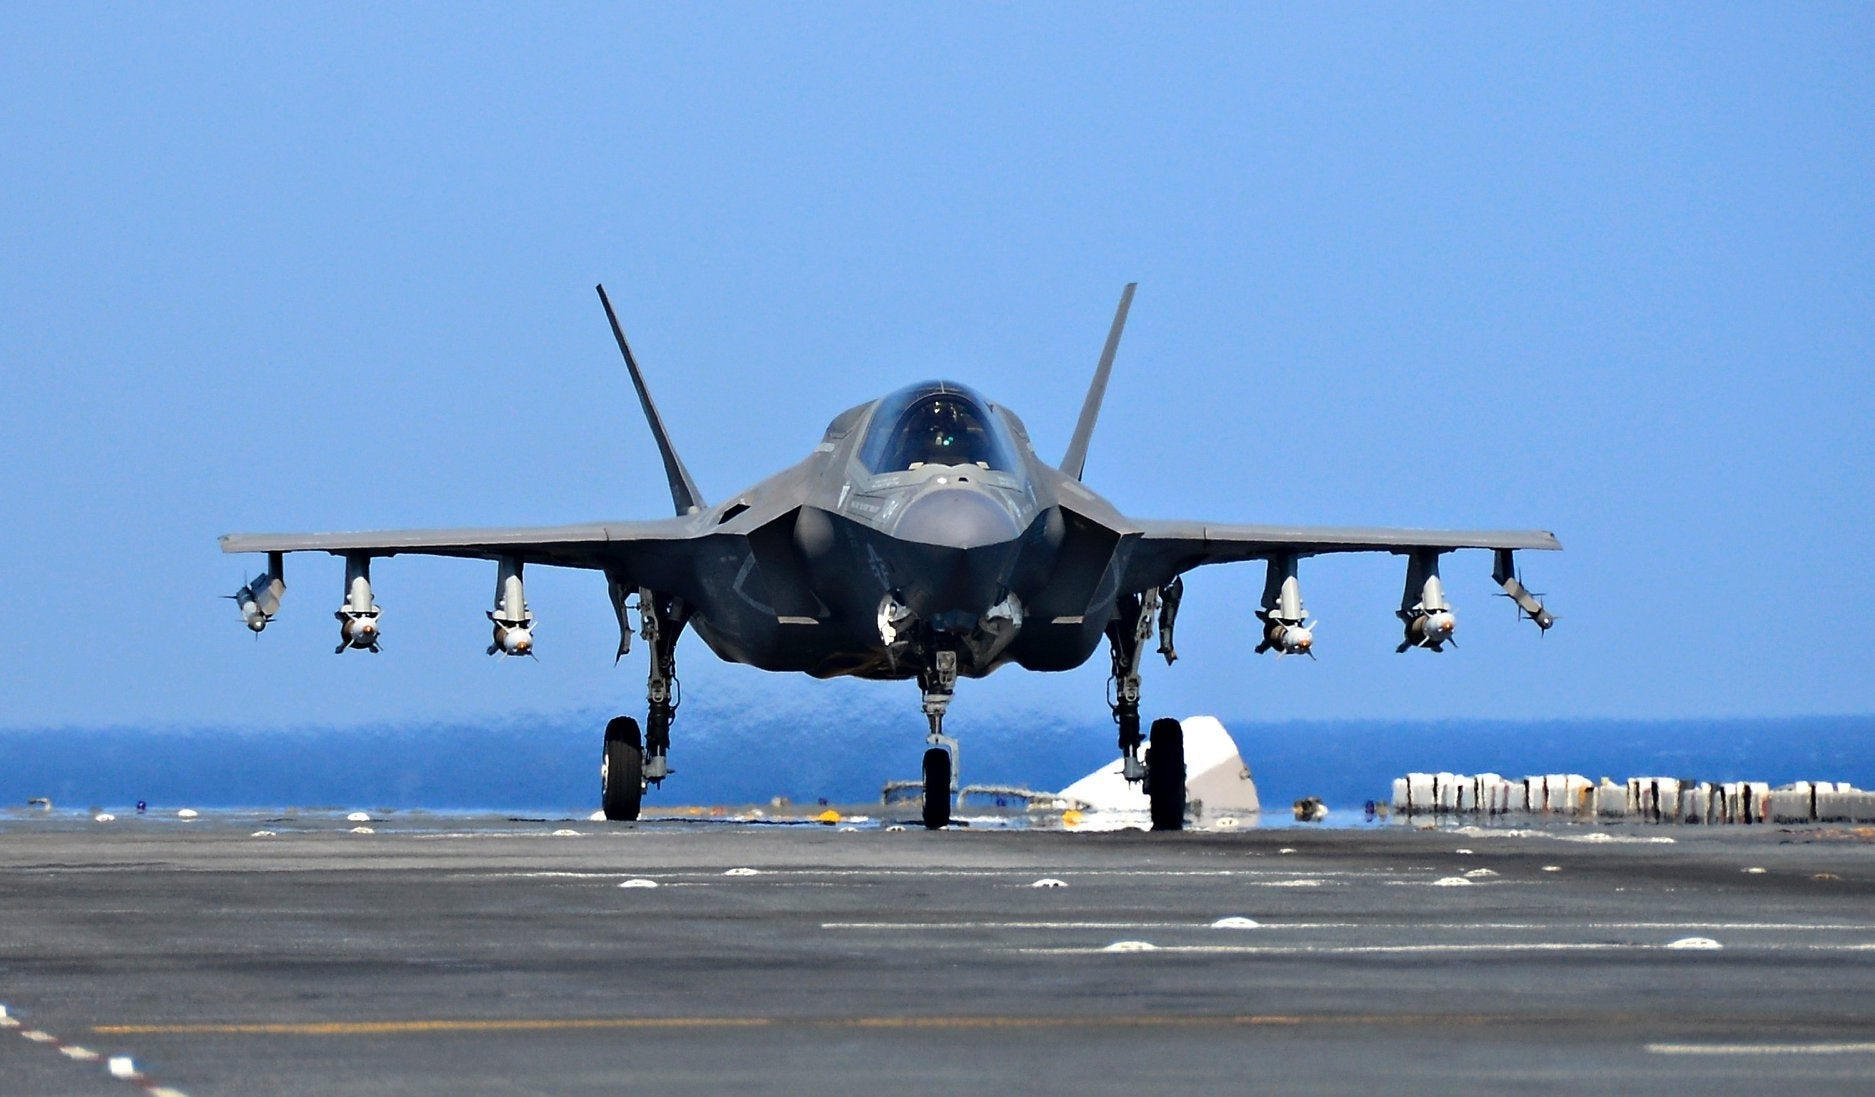 These pics show what F-35 'Beast Mode' looks like